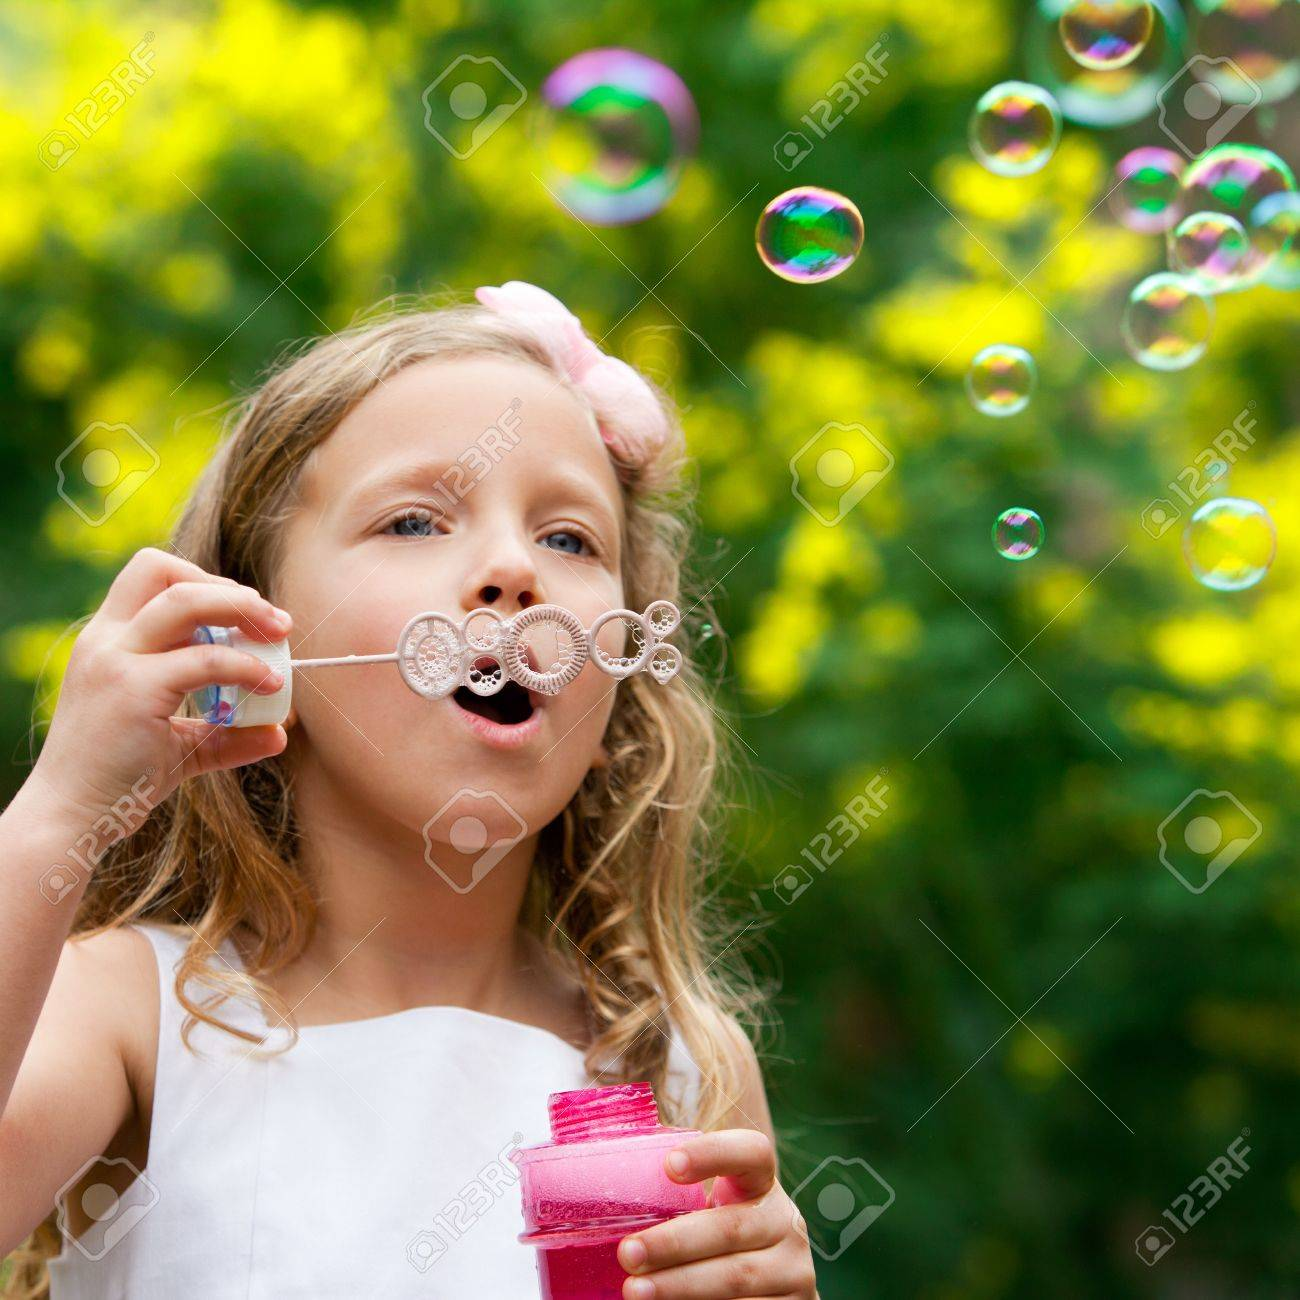 Close up of cute little girl blowing bubbles outdoors Stock Photo - 12671671